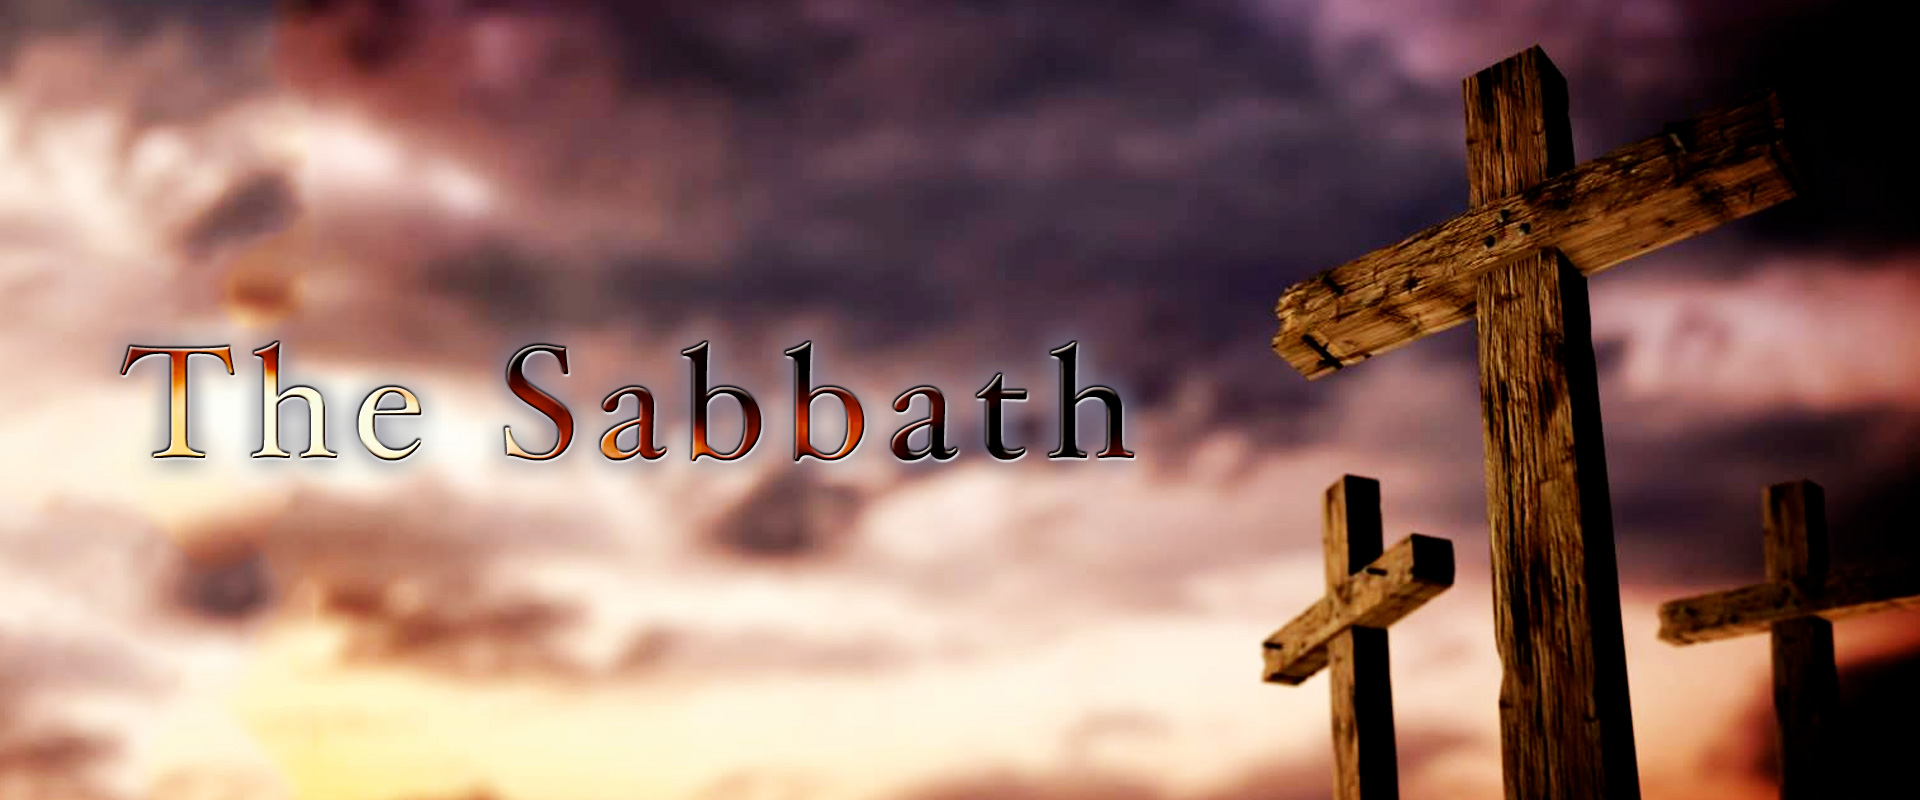 Sabbath School Net for Bible Study and Discussion